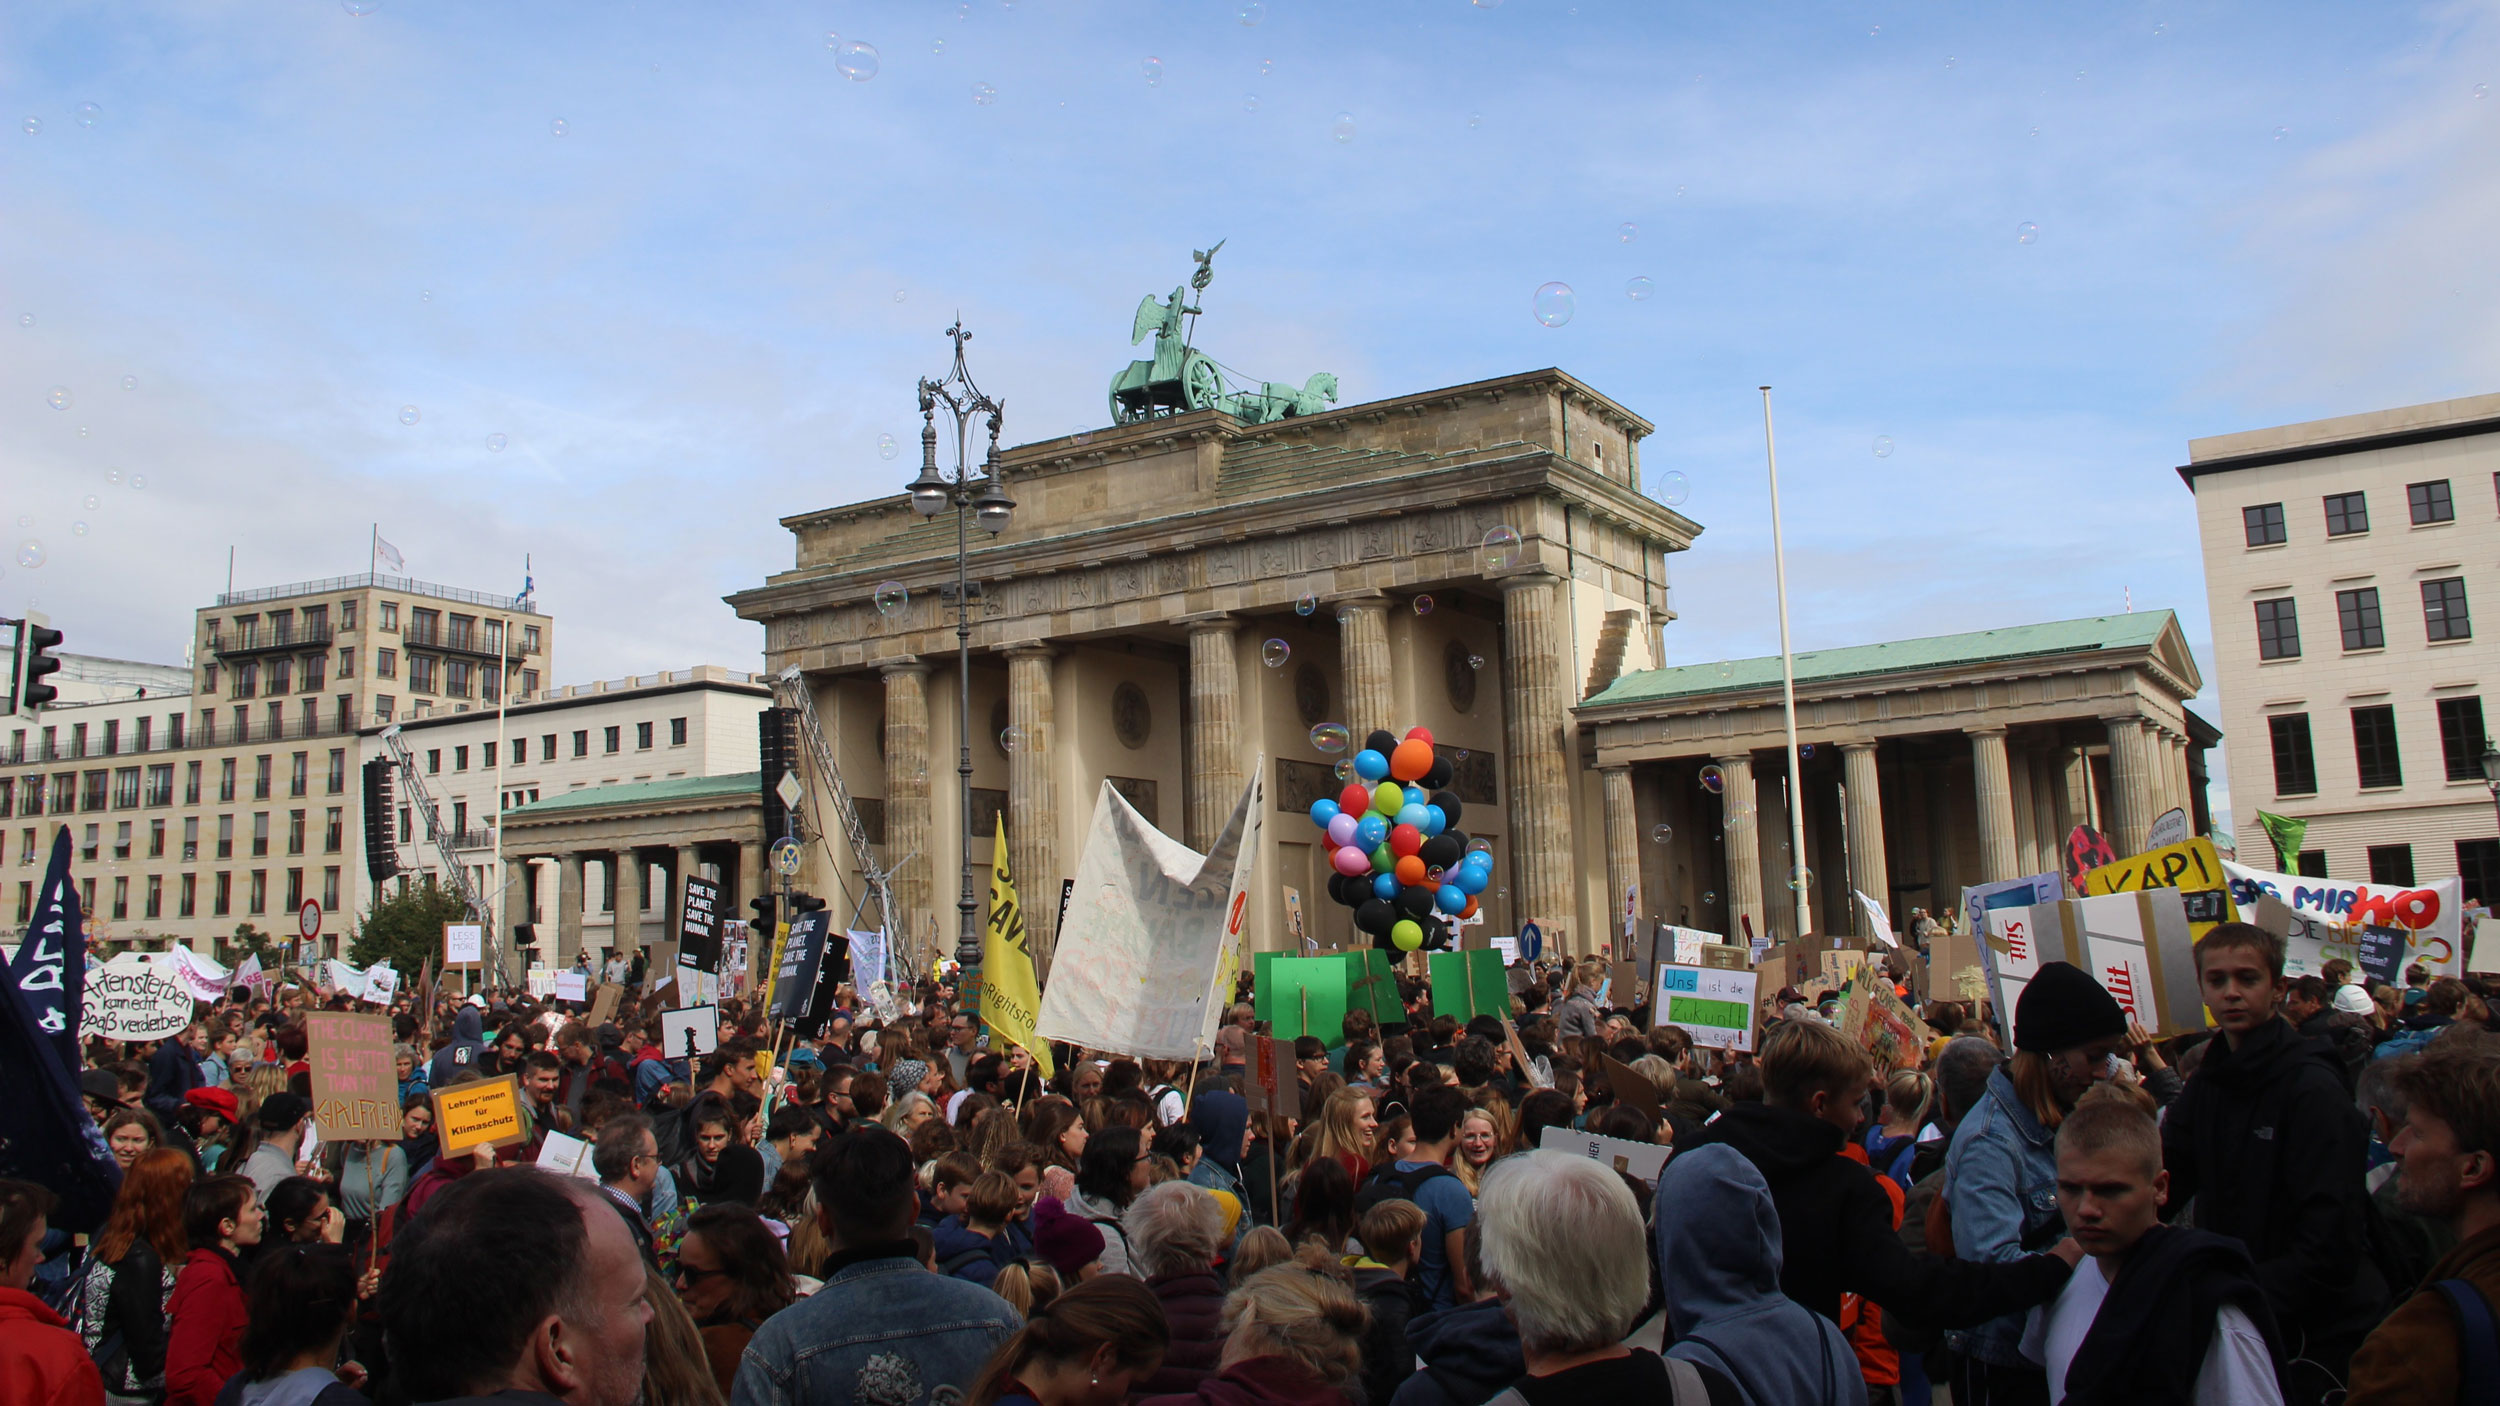 An estimated 100,000 people turned out for the climate strike in Berlin on Sept. 20, 2019.